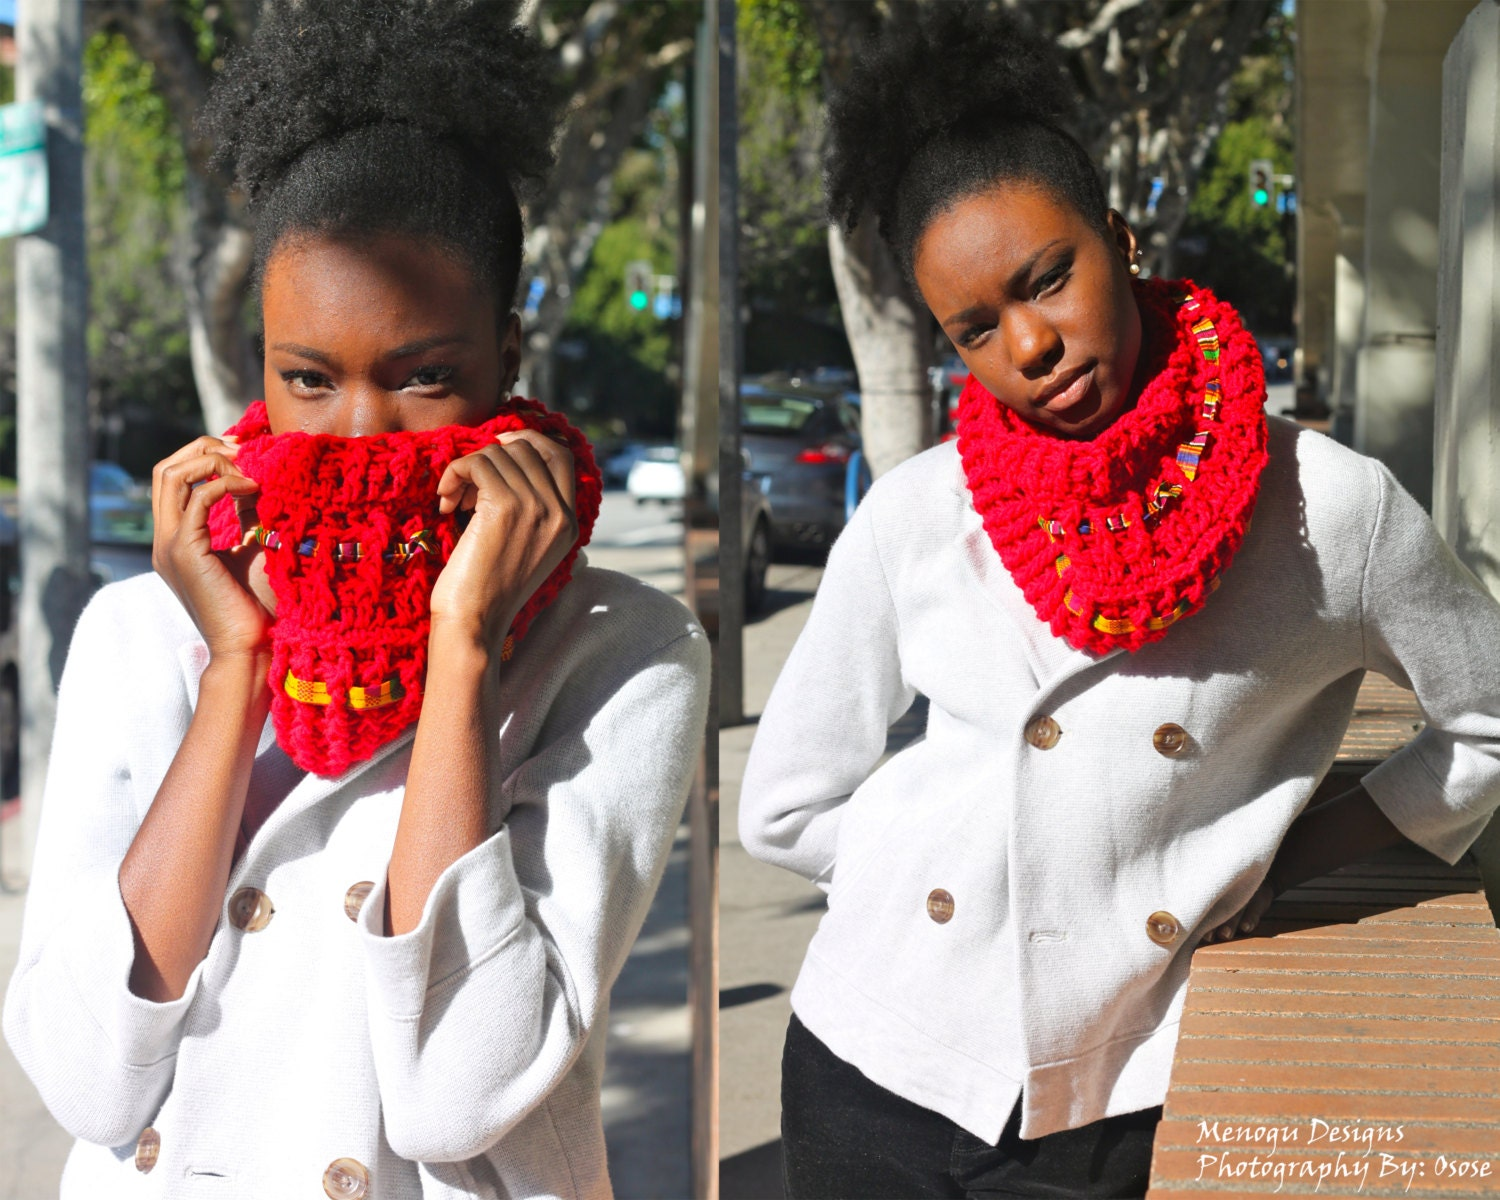 Red Crochet Kente Cowl Neck Scarf by MenoguDesigns on Etsy Cowl Neck Scarves Crochet